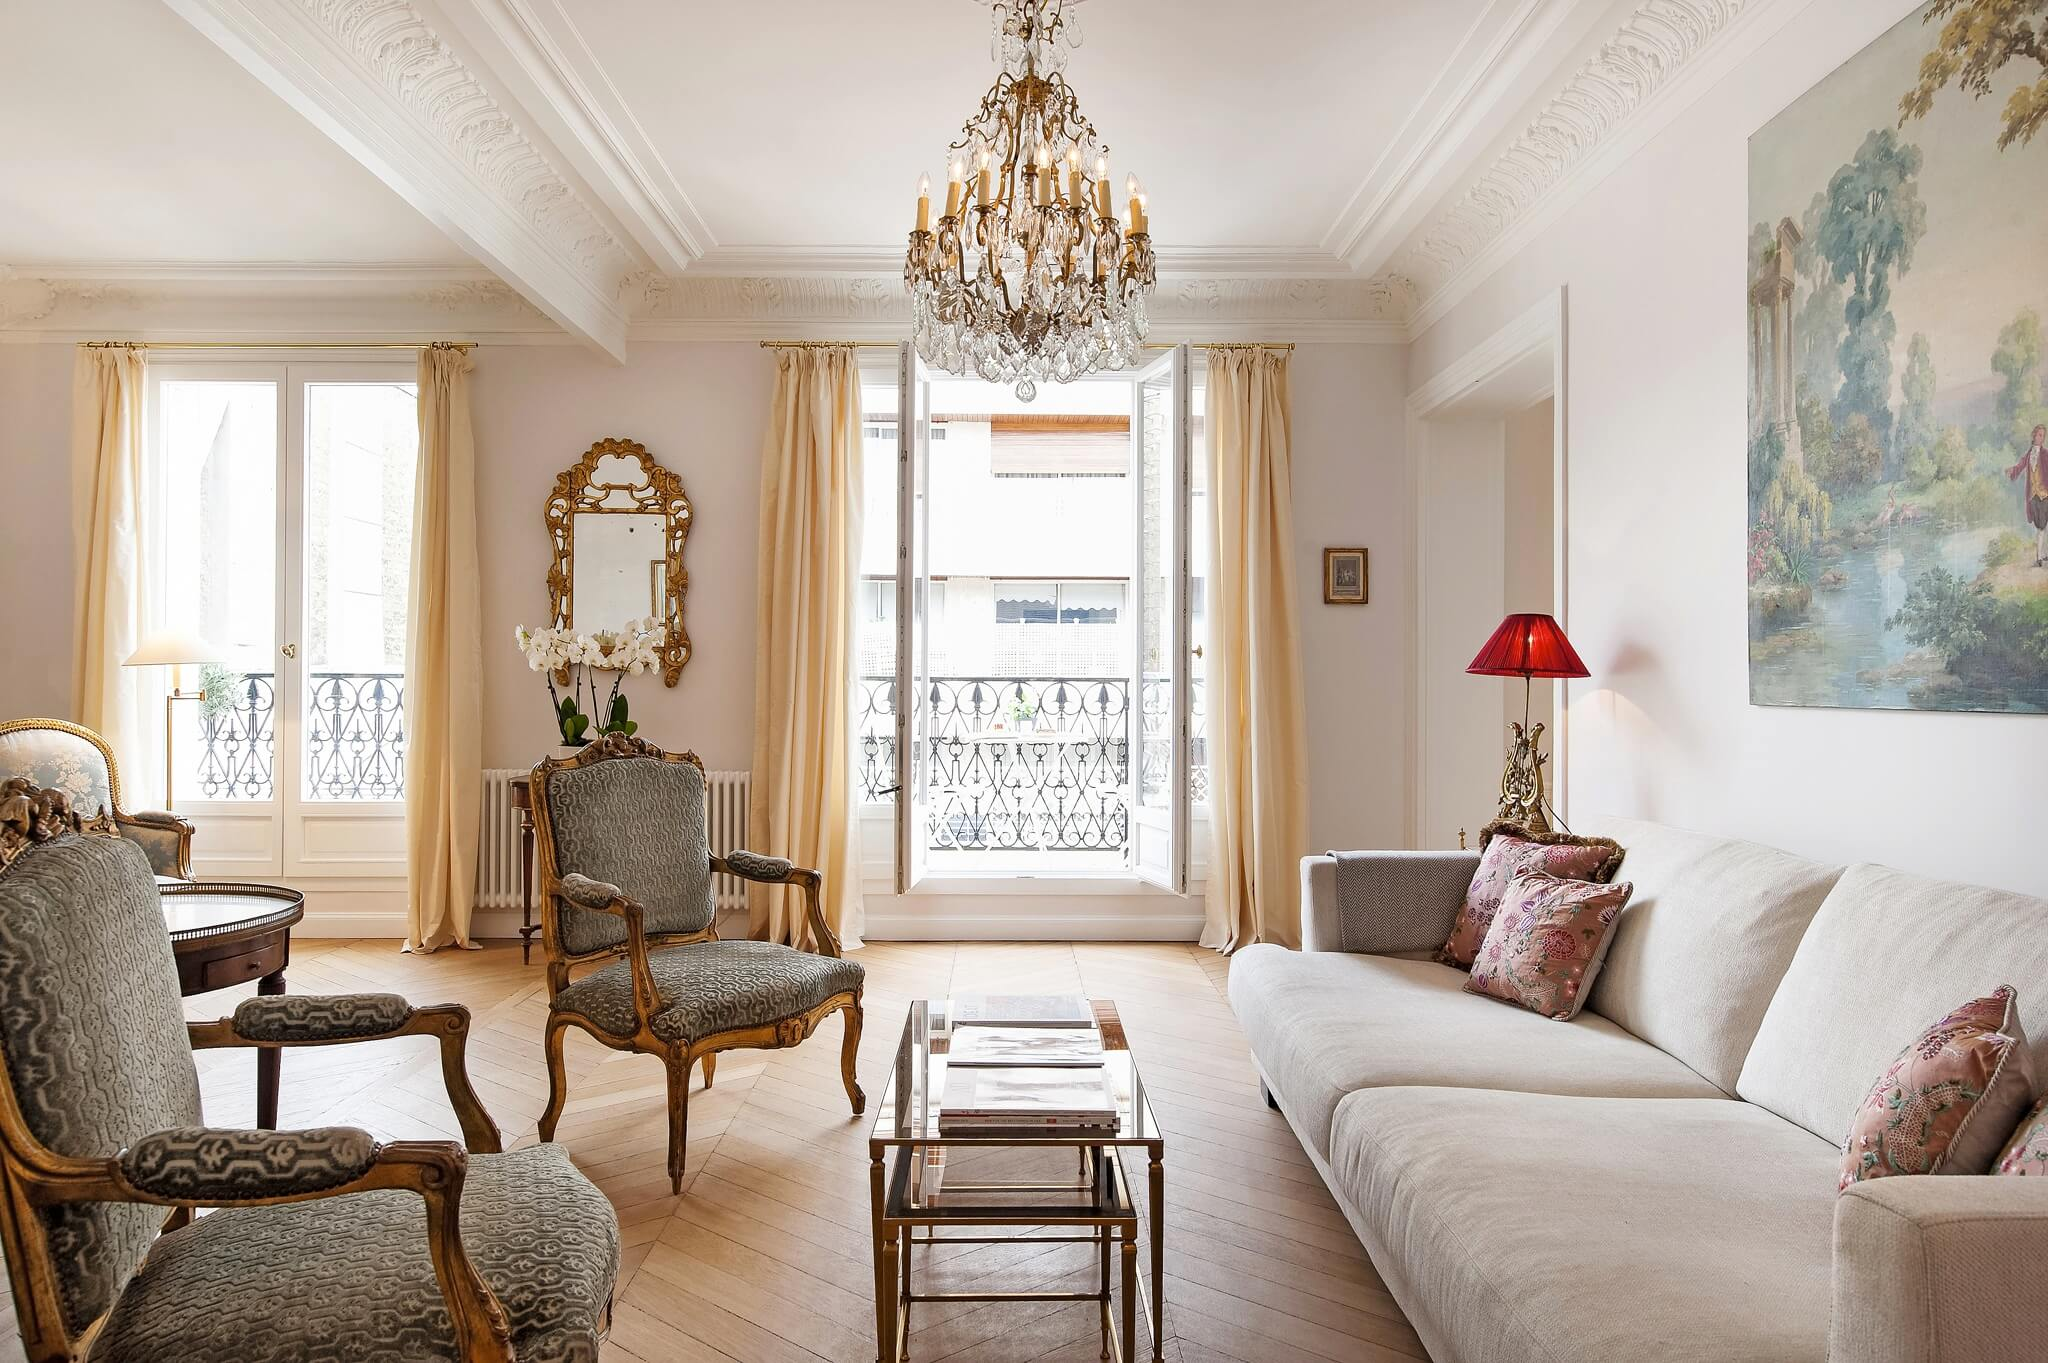 Paris Chevron Floors Seem To De Rigueur When It Comes Parisian Apartments And Haven In Luxury Vacation Rental The 16th Arrondist Is